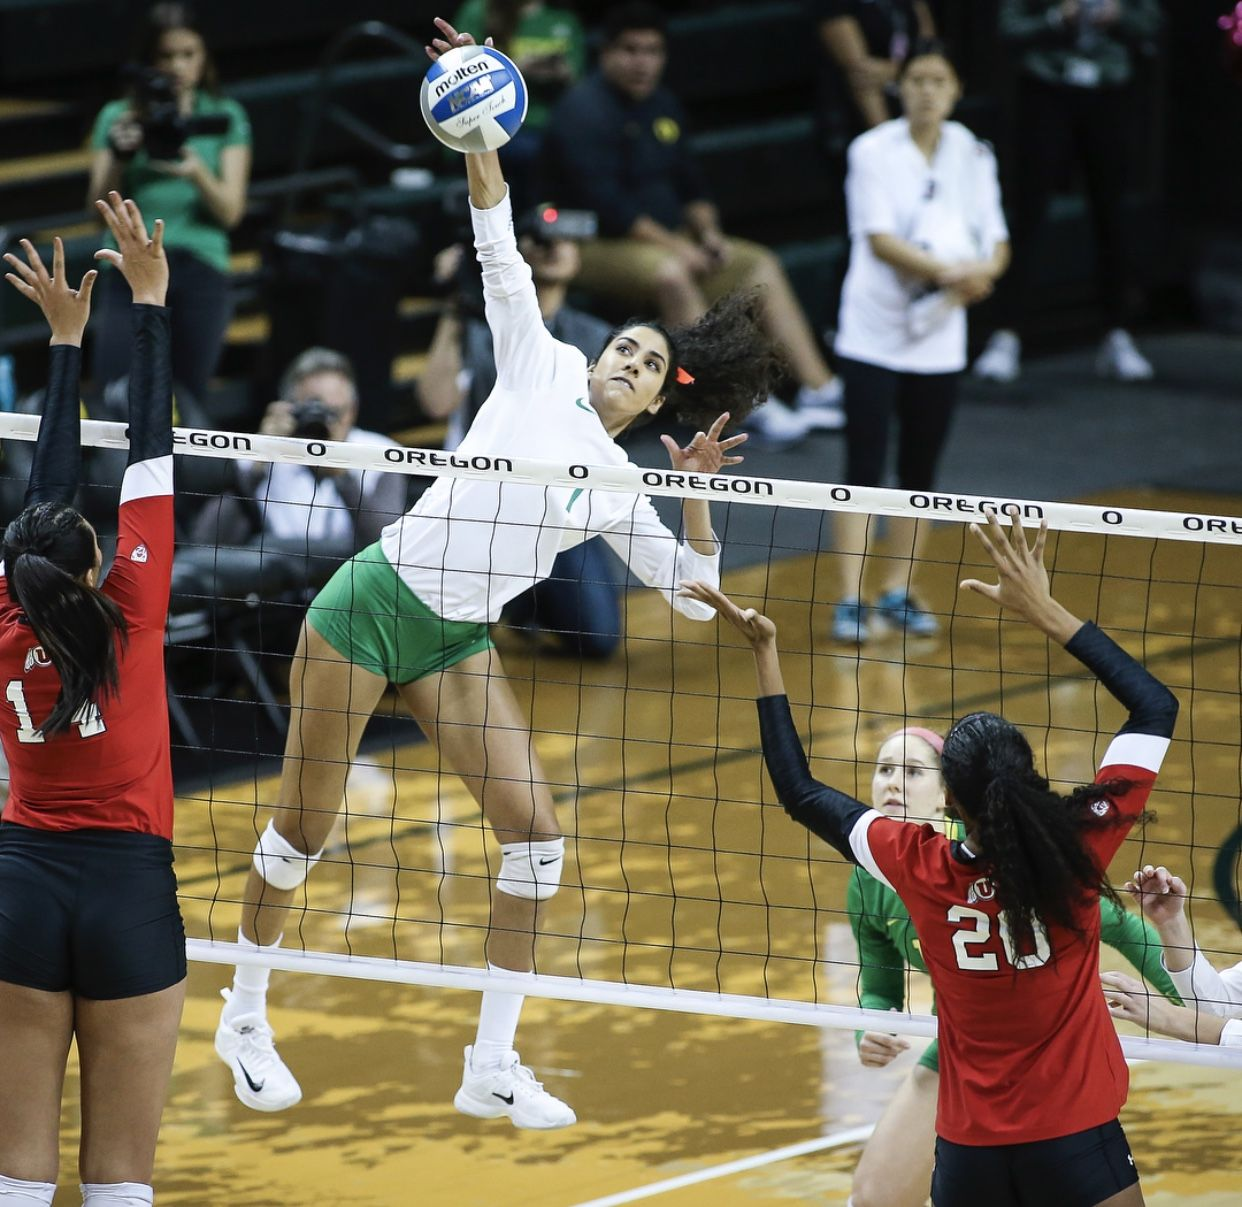 Pin By Abby Trauman On Oregon Ducks Volleyball Female Volleyball Players Volleyball Photos Volleyball Players